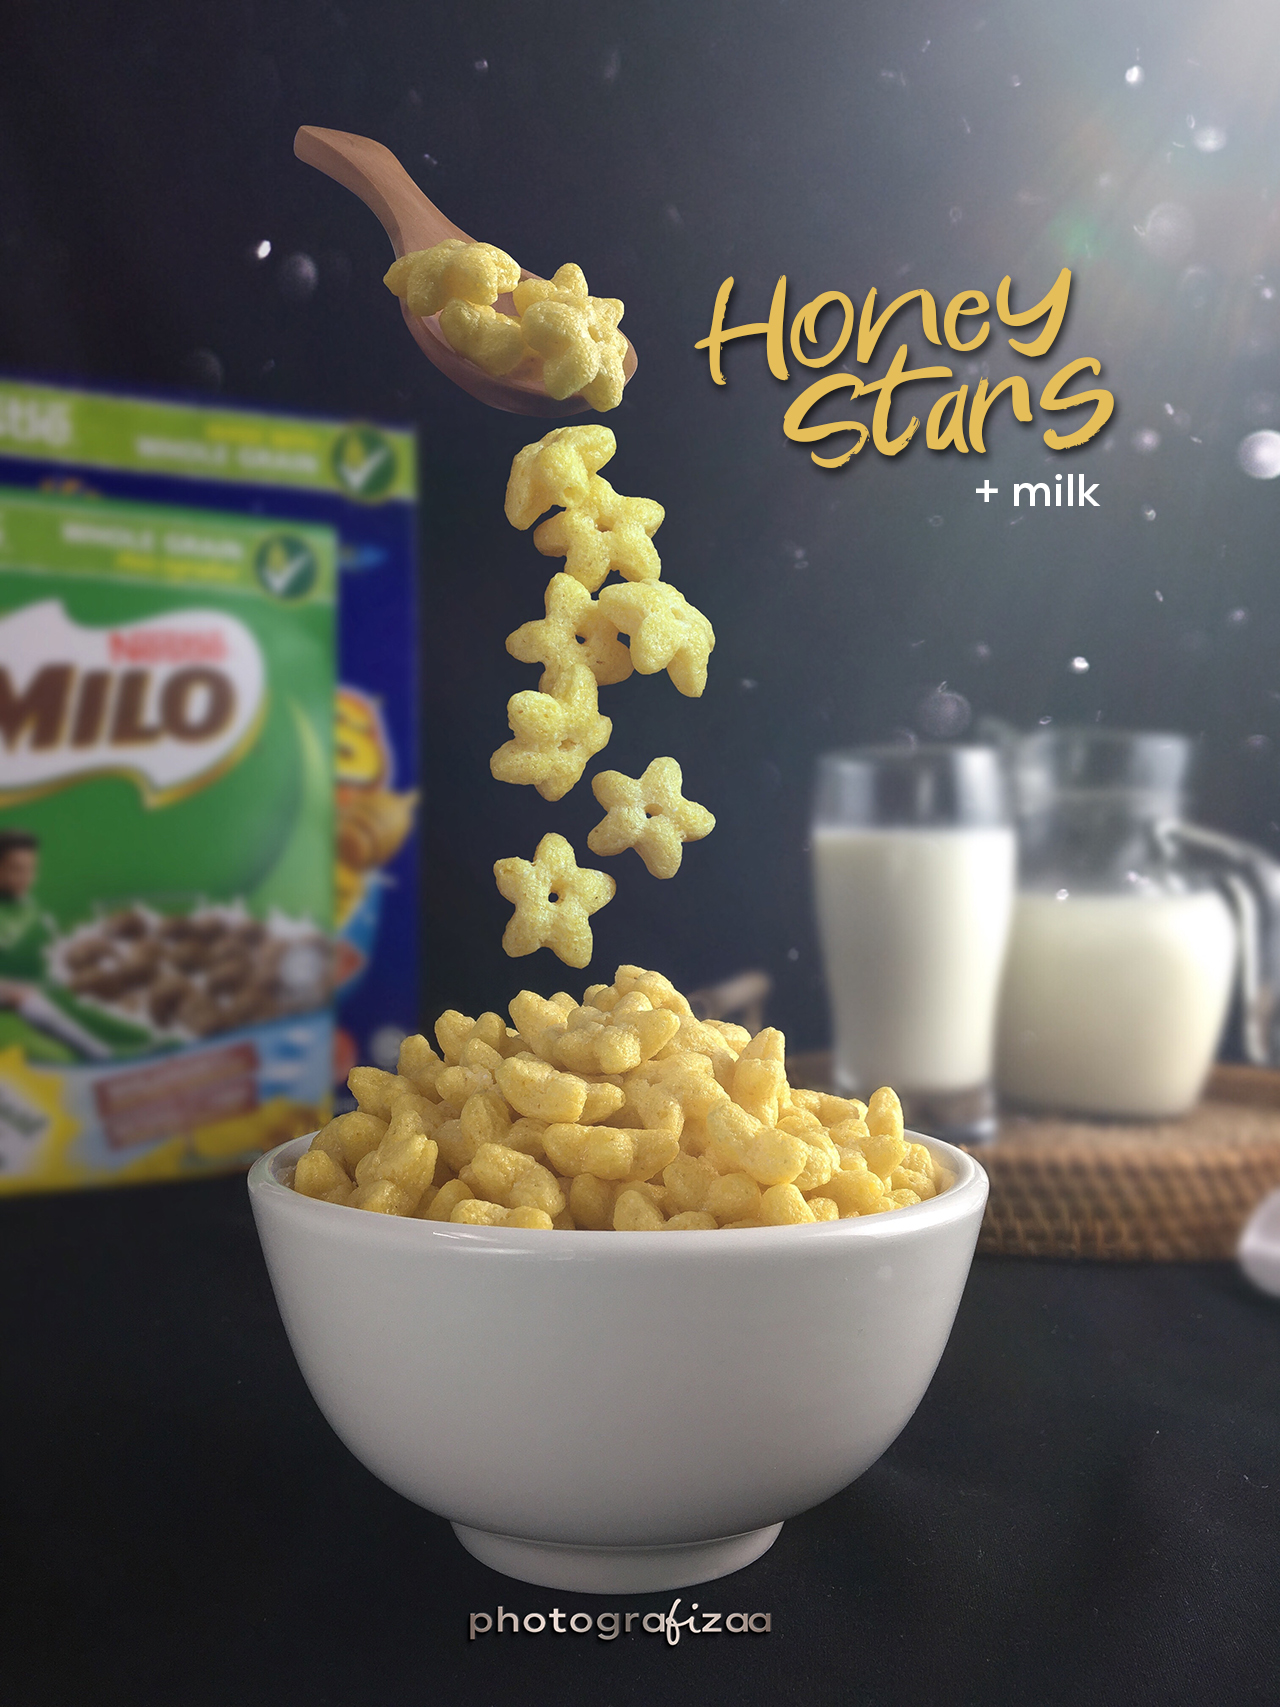 Breakfast Cereal Honey Stars And Milk